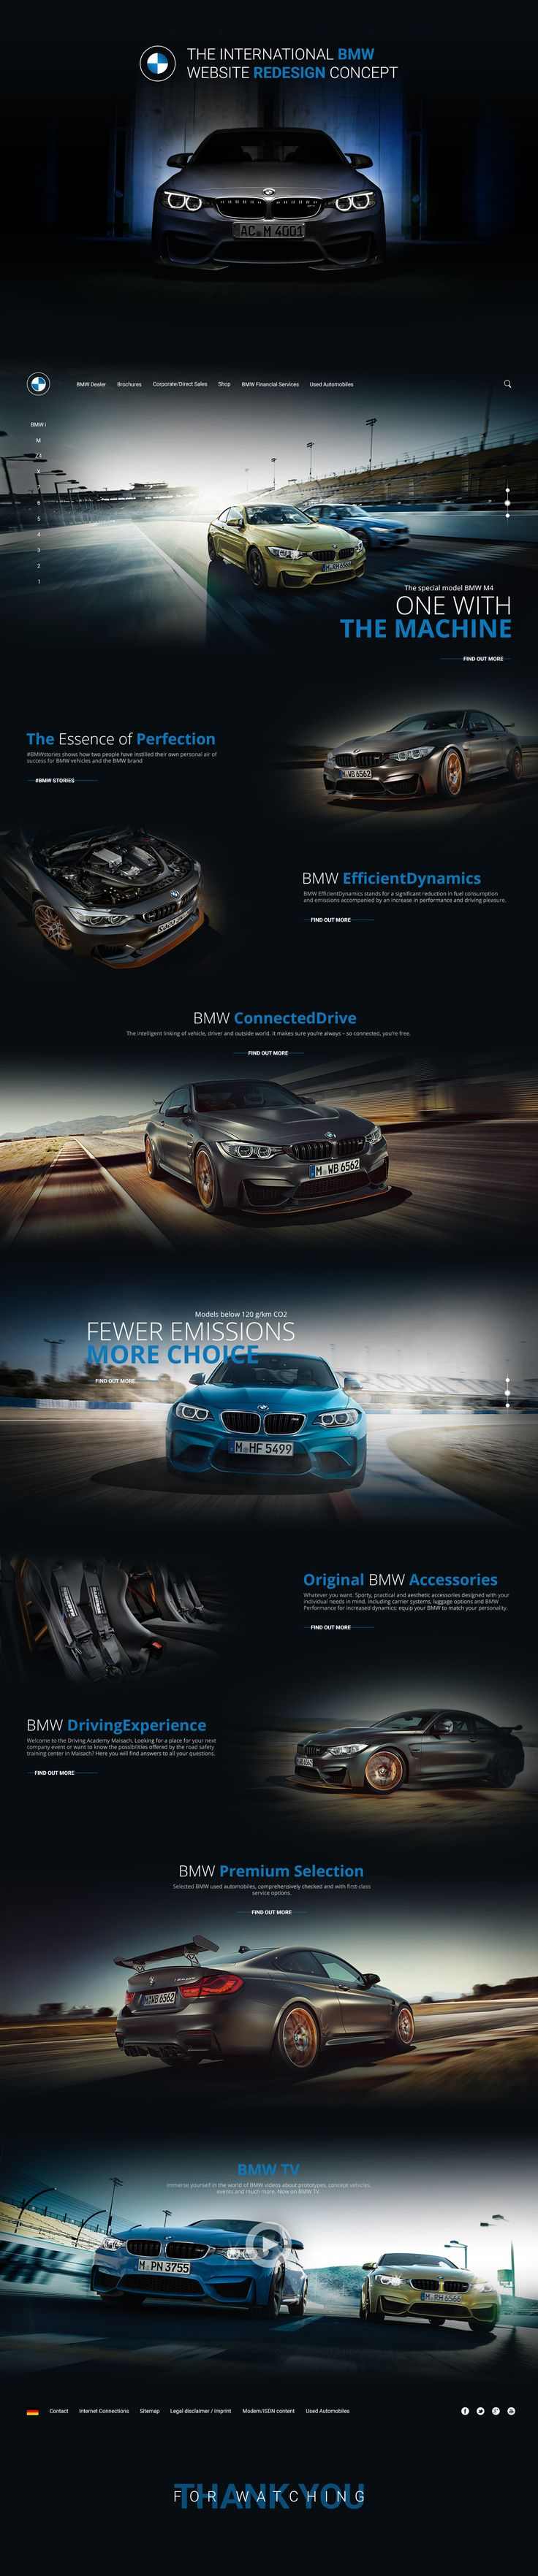 The international BMW website redesign concept on Behance